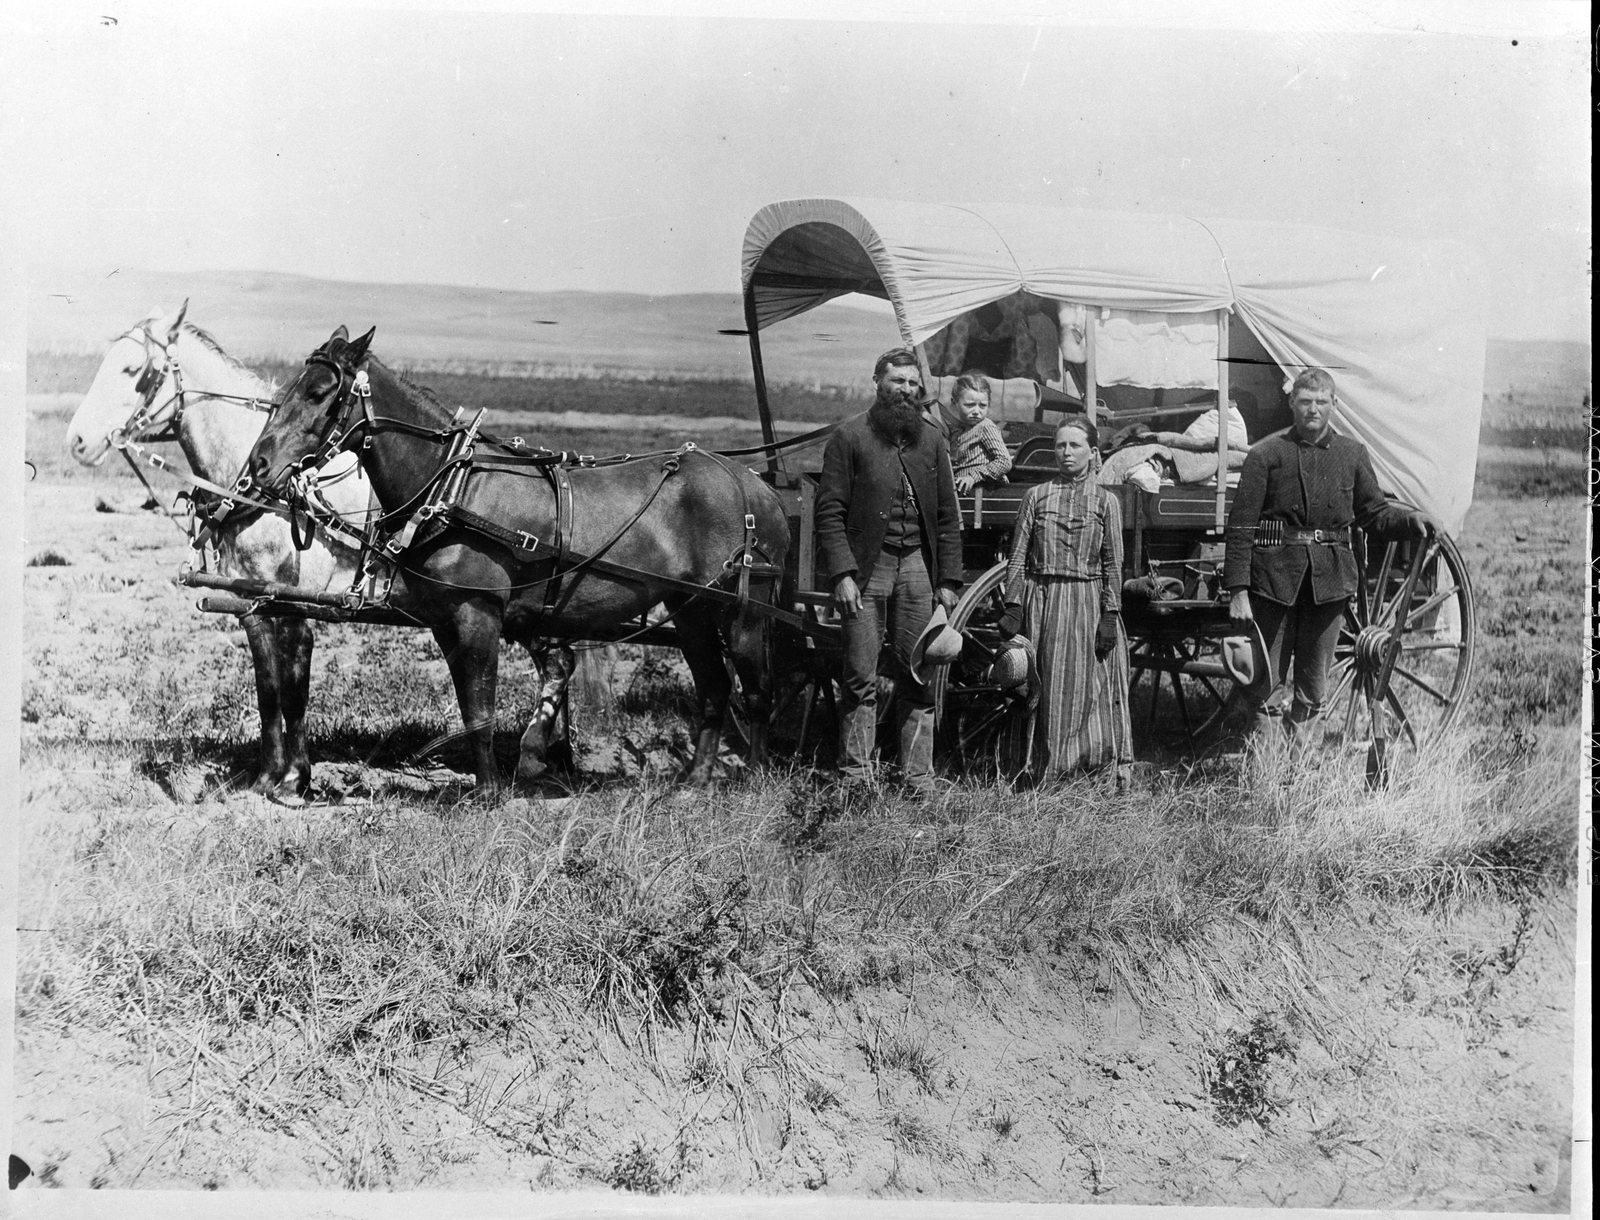 Photograph of a Family with Their Covered Wagon During the Great Western Migration